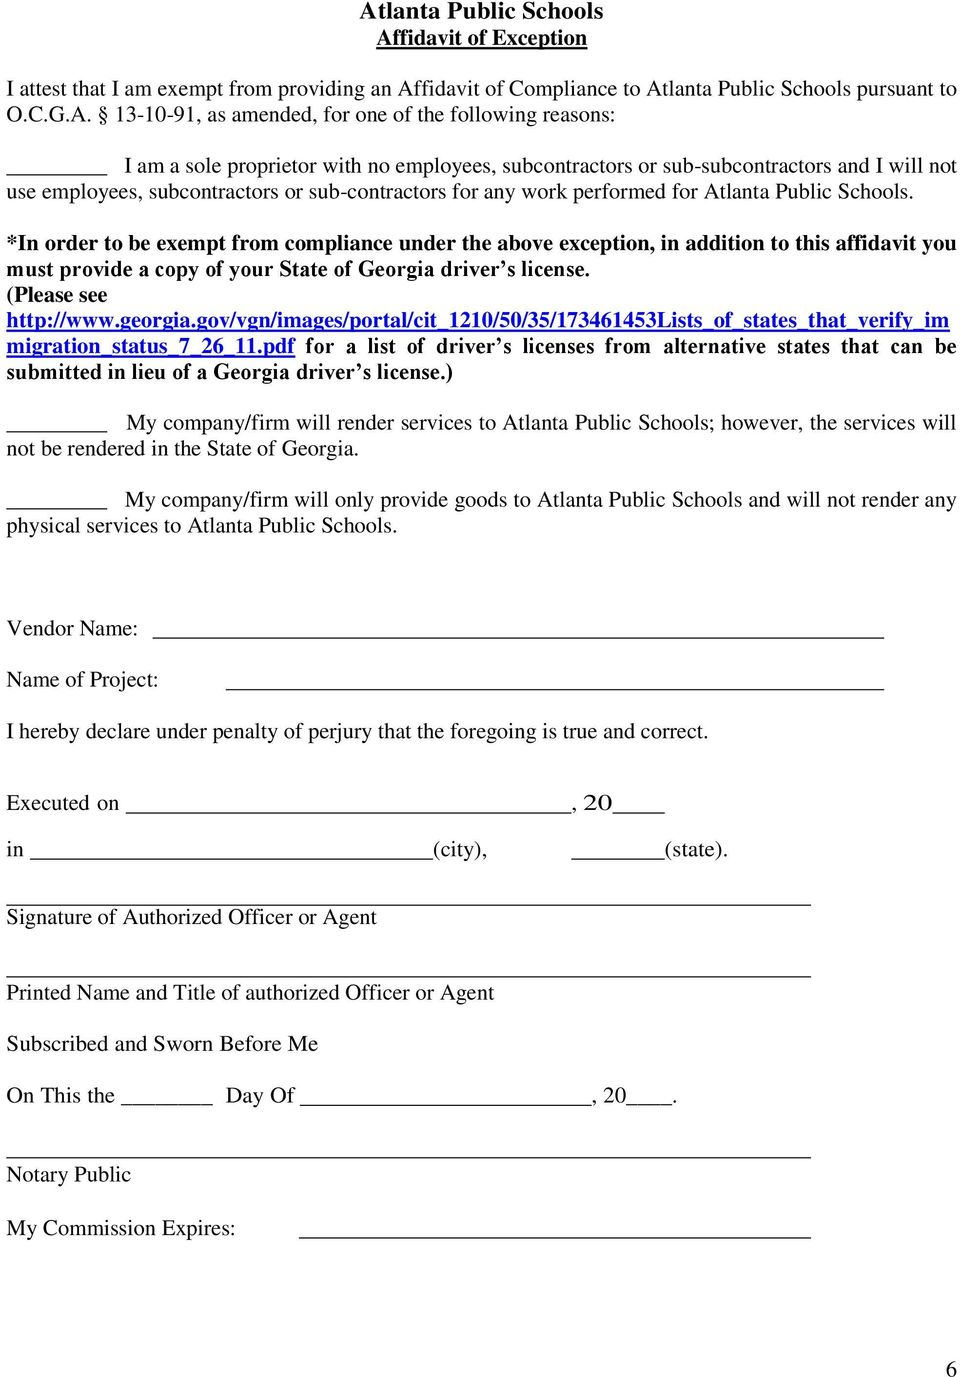 *In order to be exempt from compliance under the above exception, in addition to this affidavit you must provide a copy of your State of Georgia driver s license. (Please see http://www.georgia.